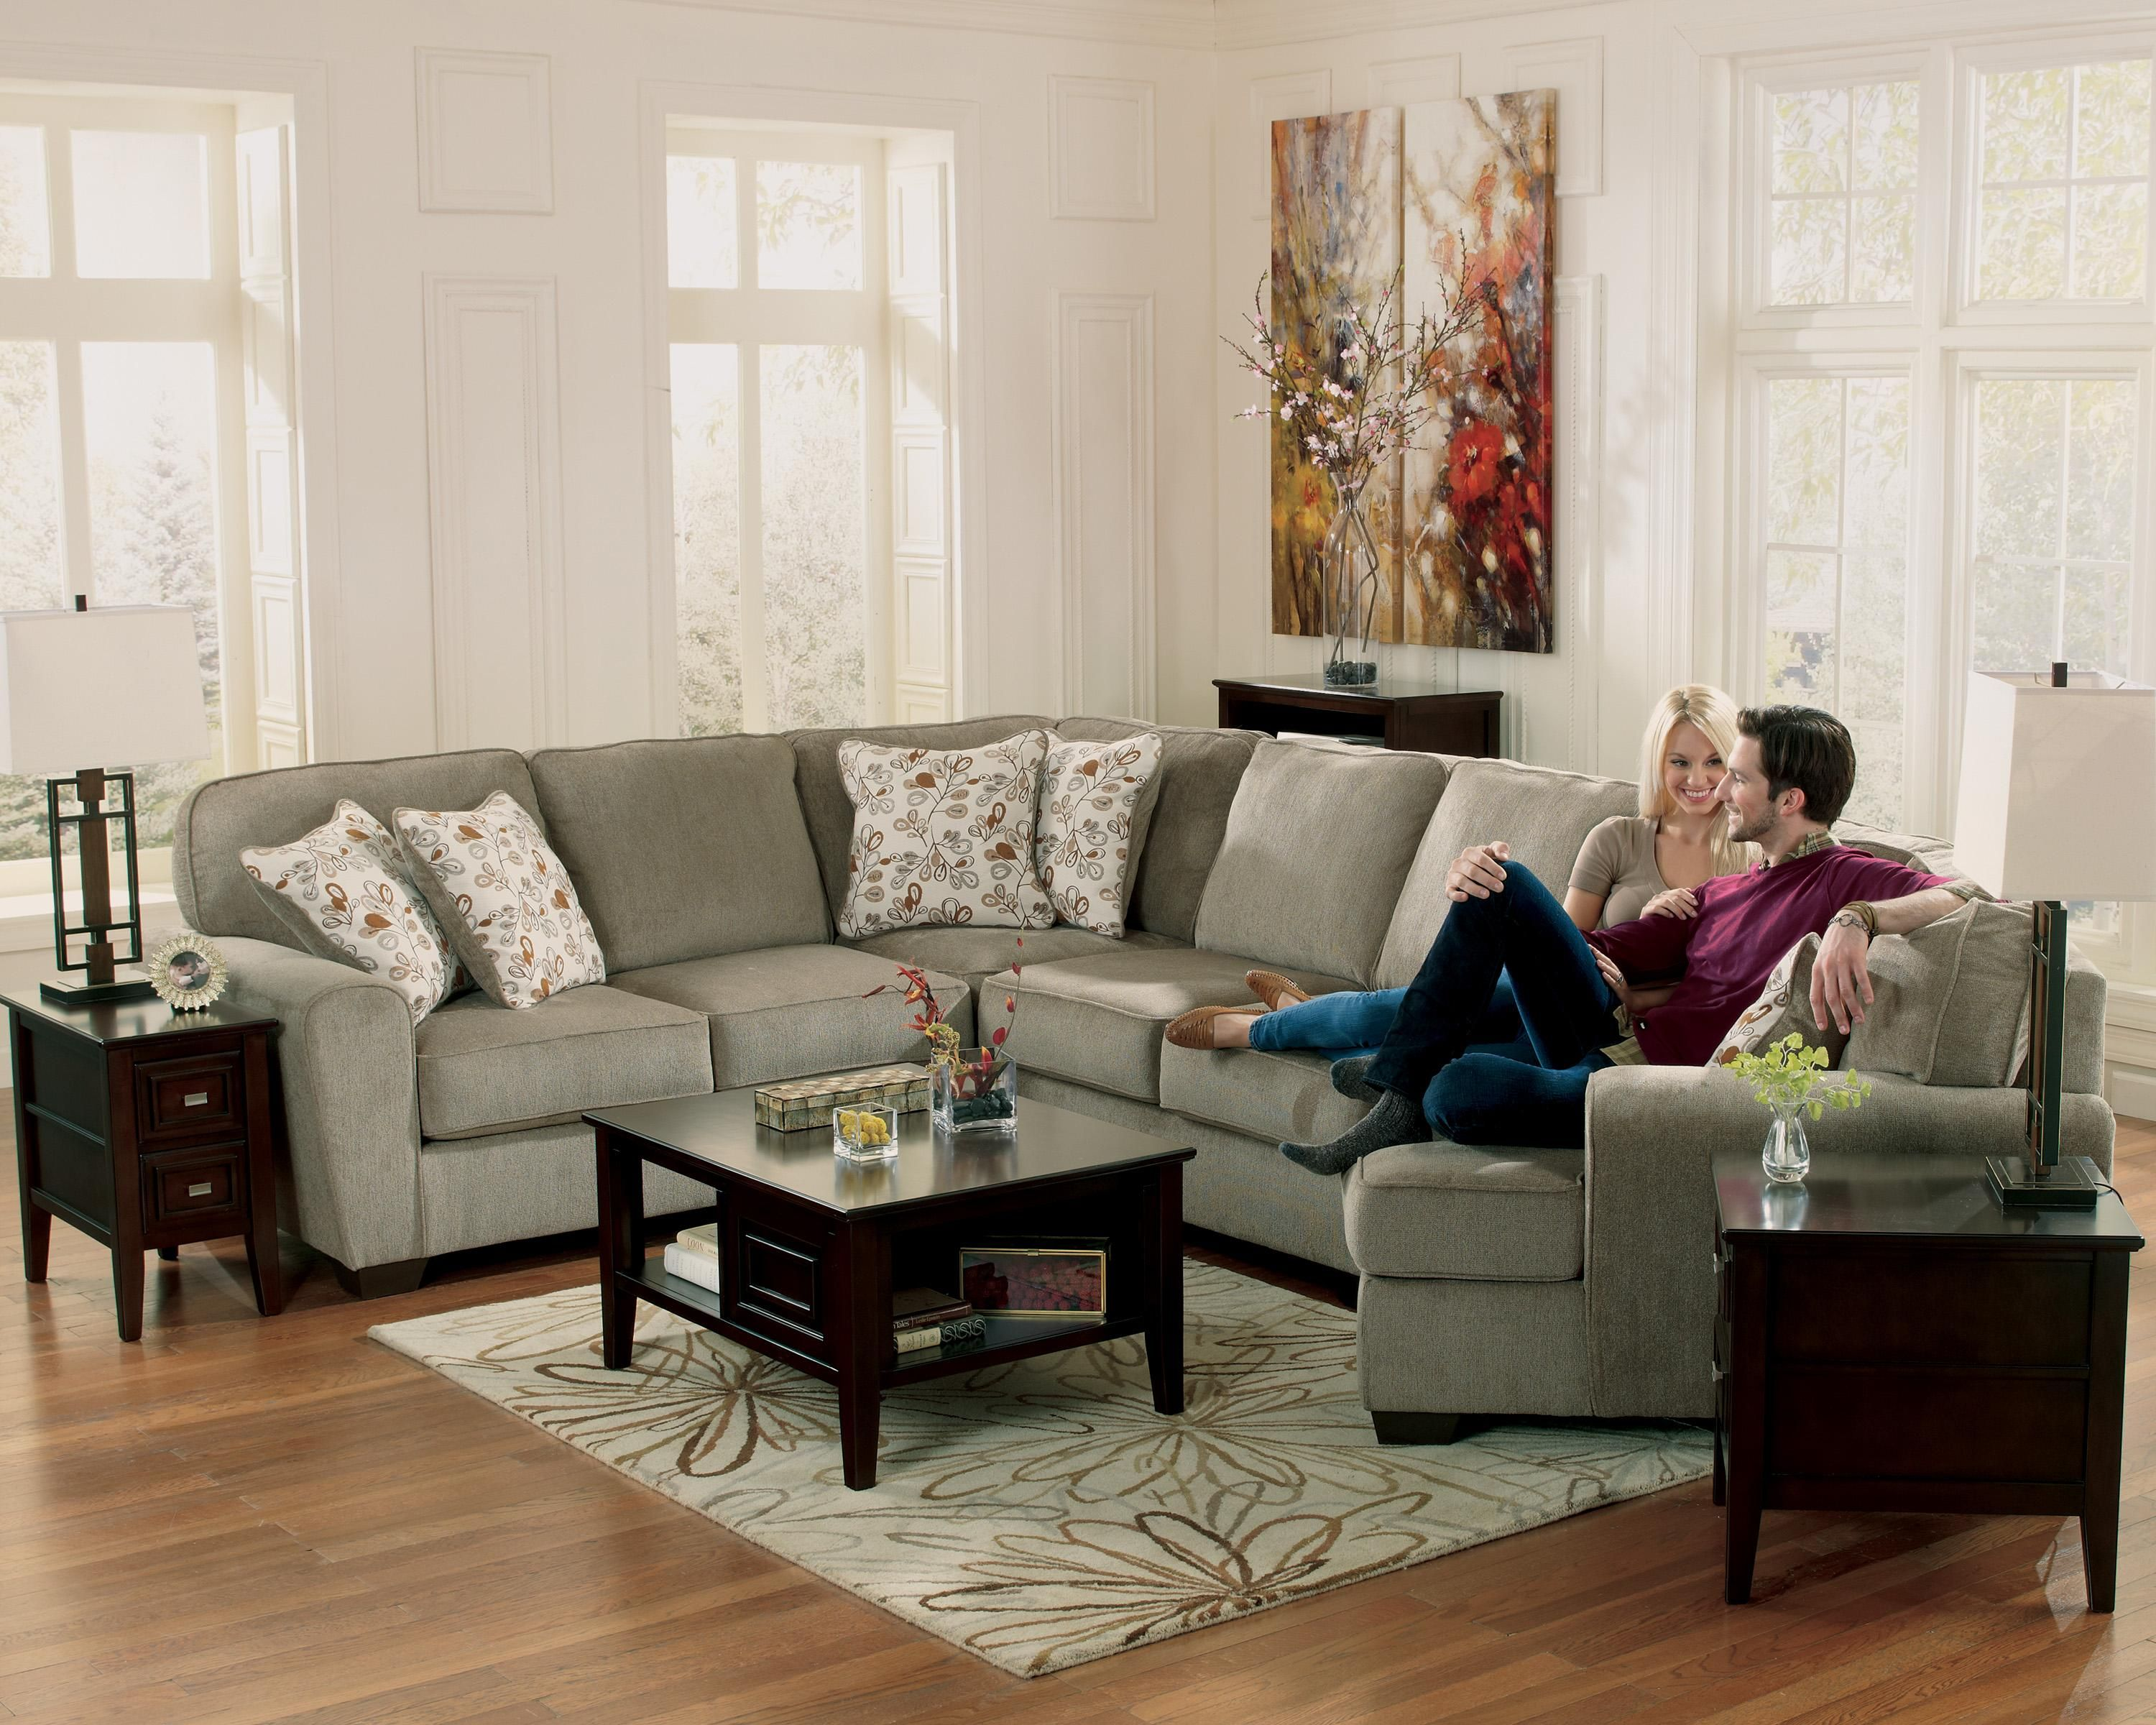 Patola Park Patina 4 Piece Small Sectional With Right Cuddler By Ashley Furniture At Northeast Factory D Living Room Sectional Furniture Sectional Sofa Couch #rotmans #living #room #sets